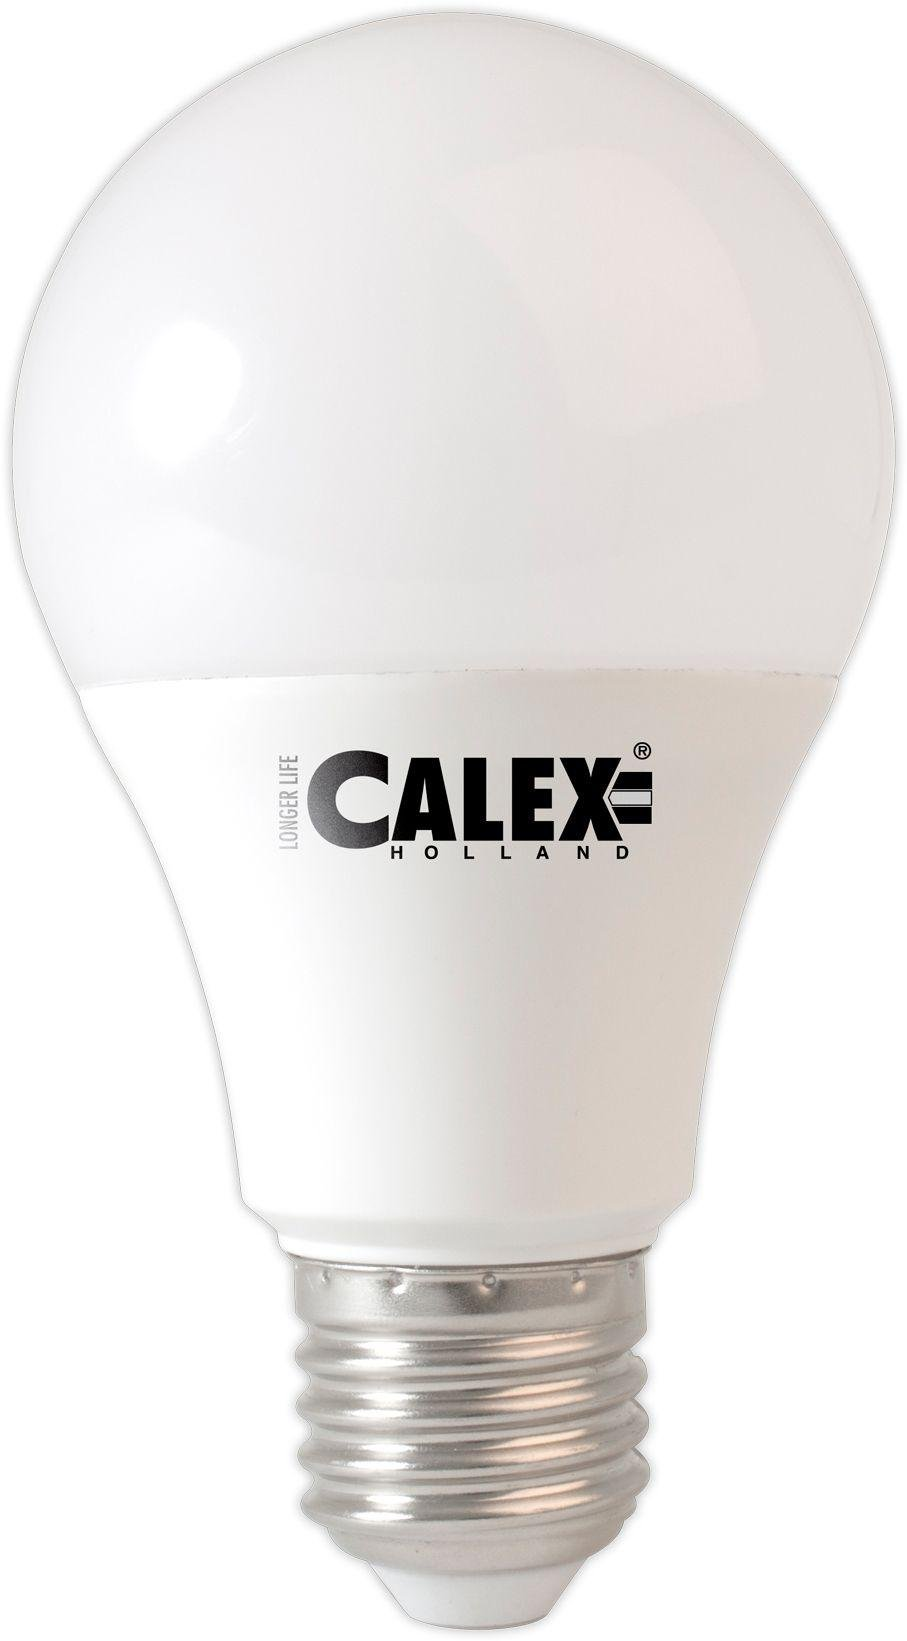 Buy Canopy Cooker Hoods Light Bulbs At Your Online Shop For Home And Garden